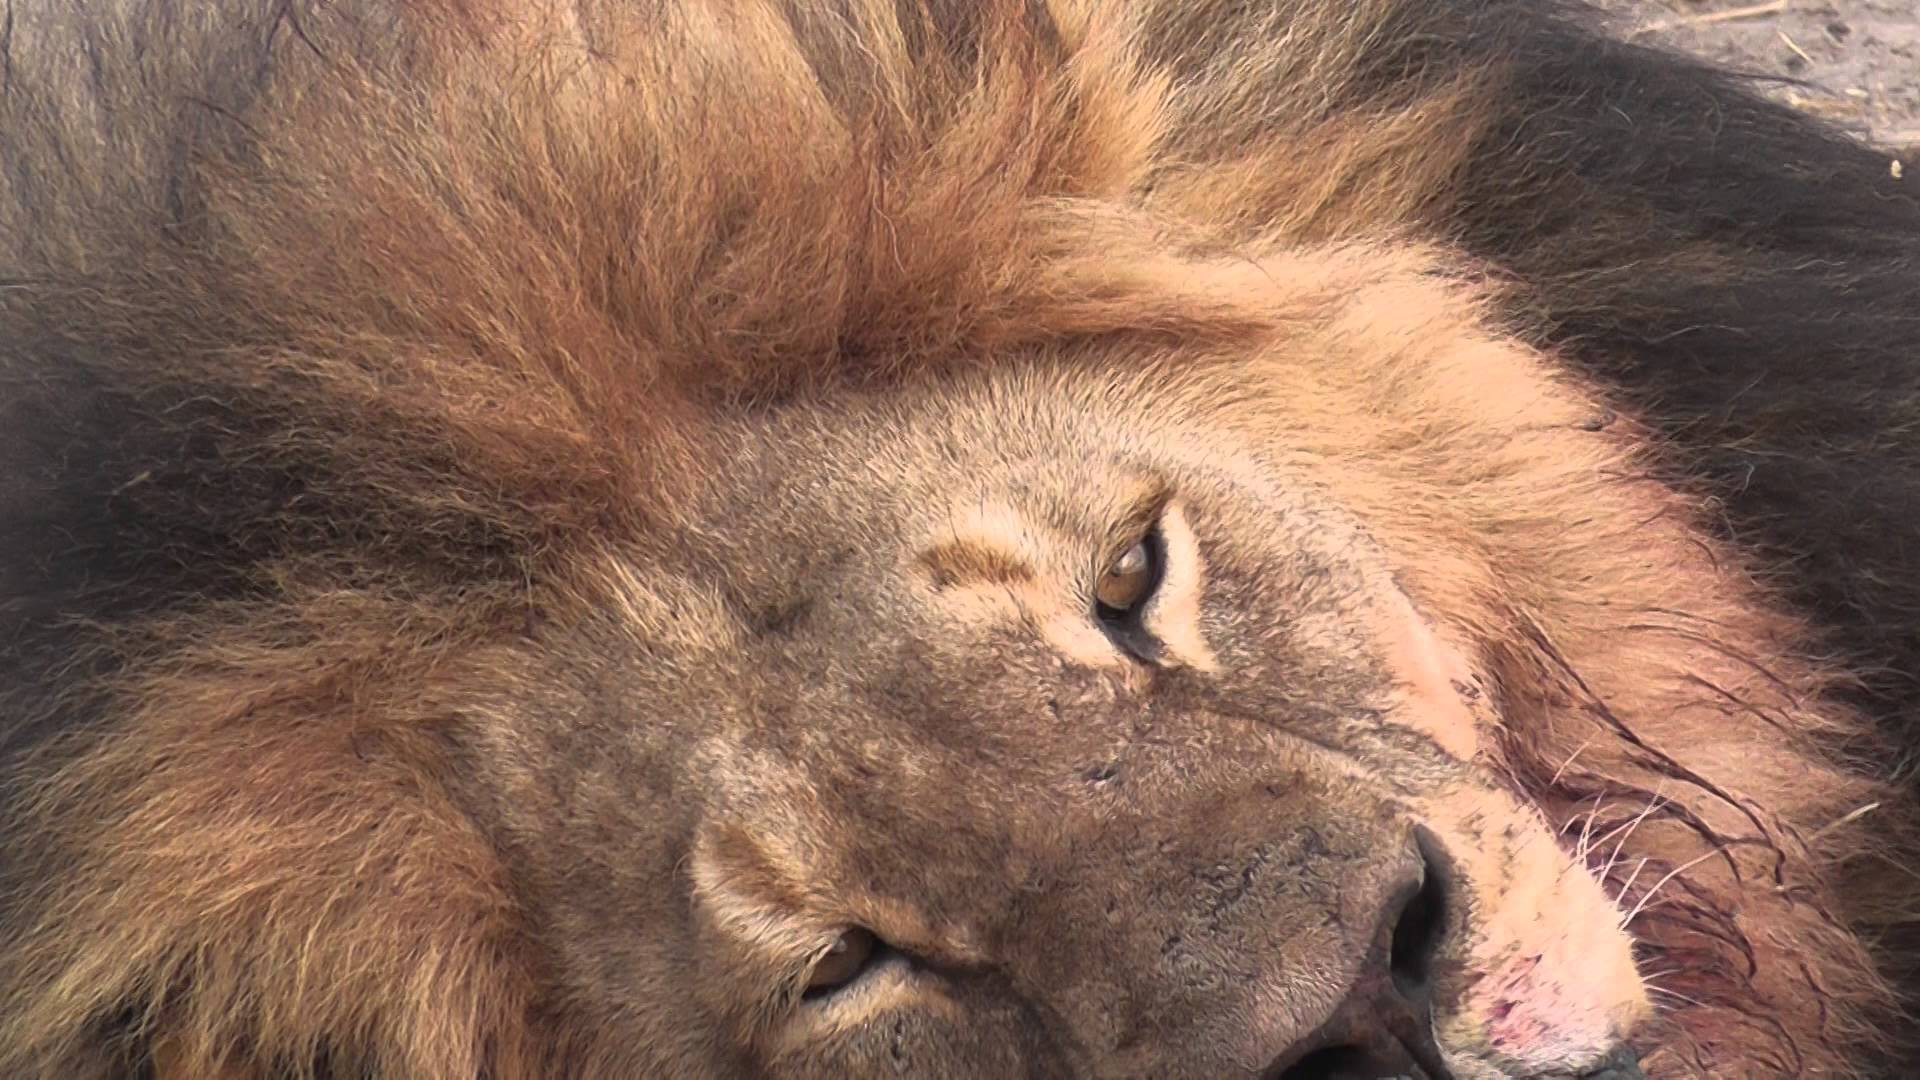 Minnesota Dentist Walter Palmer Accused of Killing Cecil The Lion, The True 'King of Lions'